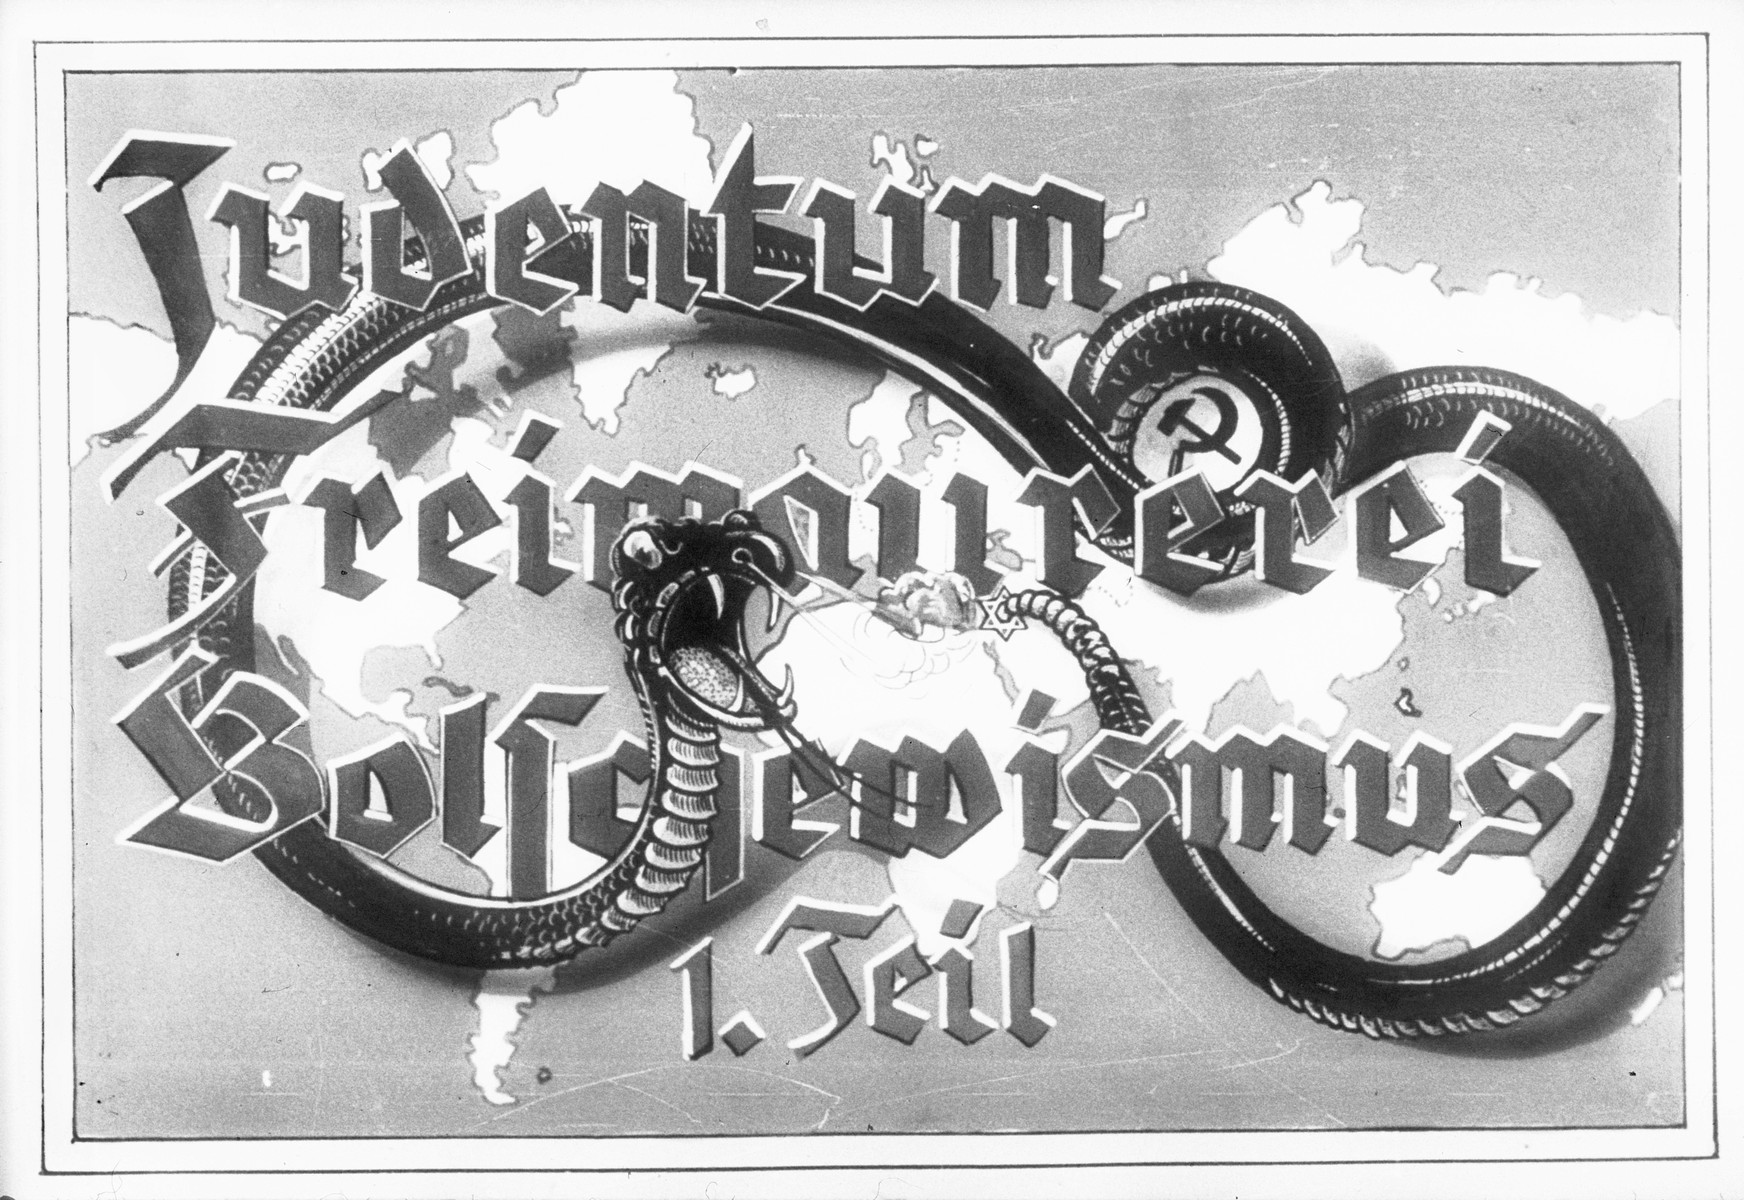 """Propaganda slide entitled """"Jewry, Freemasonry and Bolshevism,"""" featuring a poisonous snake with bared fangs, which served as the title slide for Part I of the lecture series."""